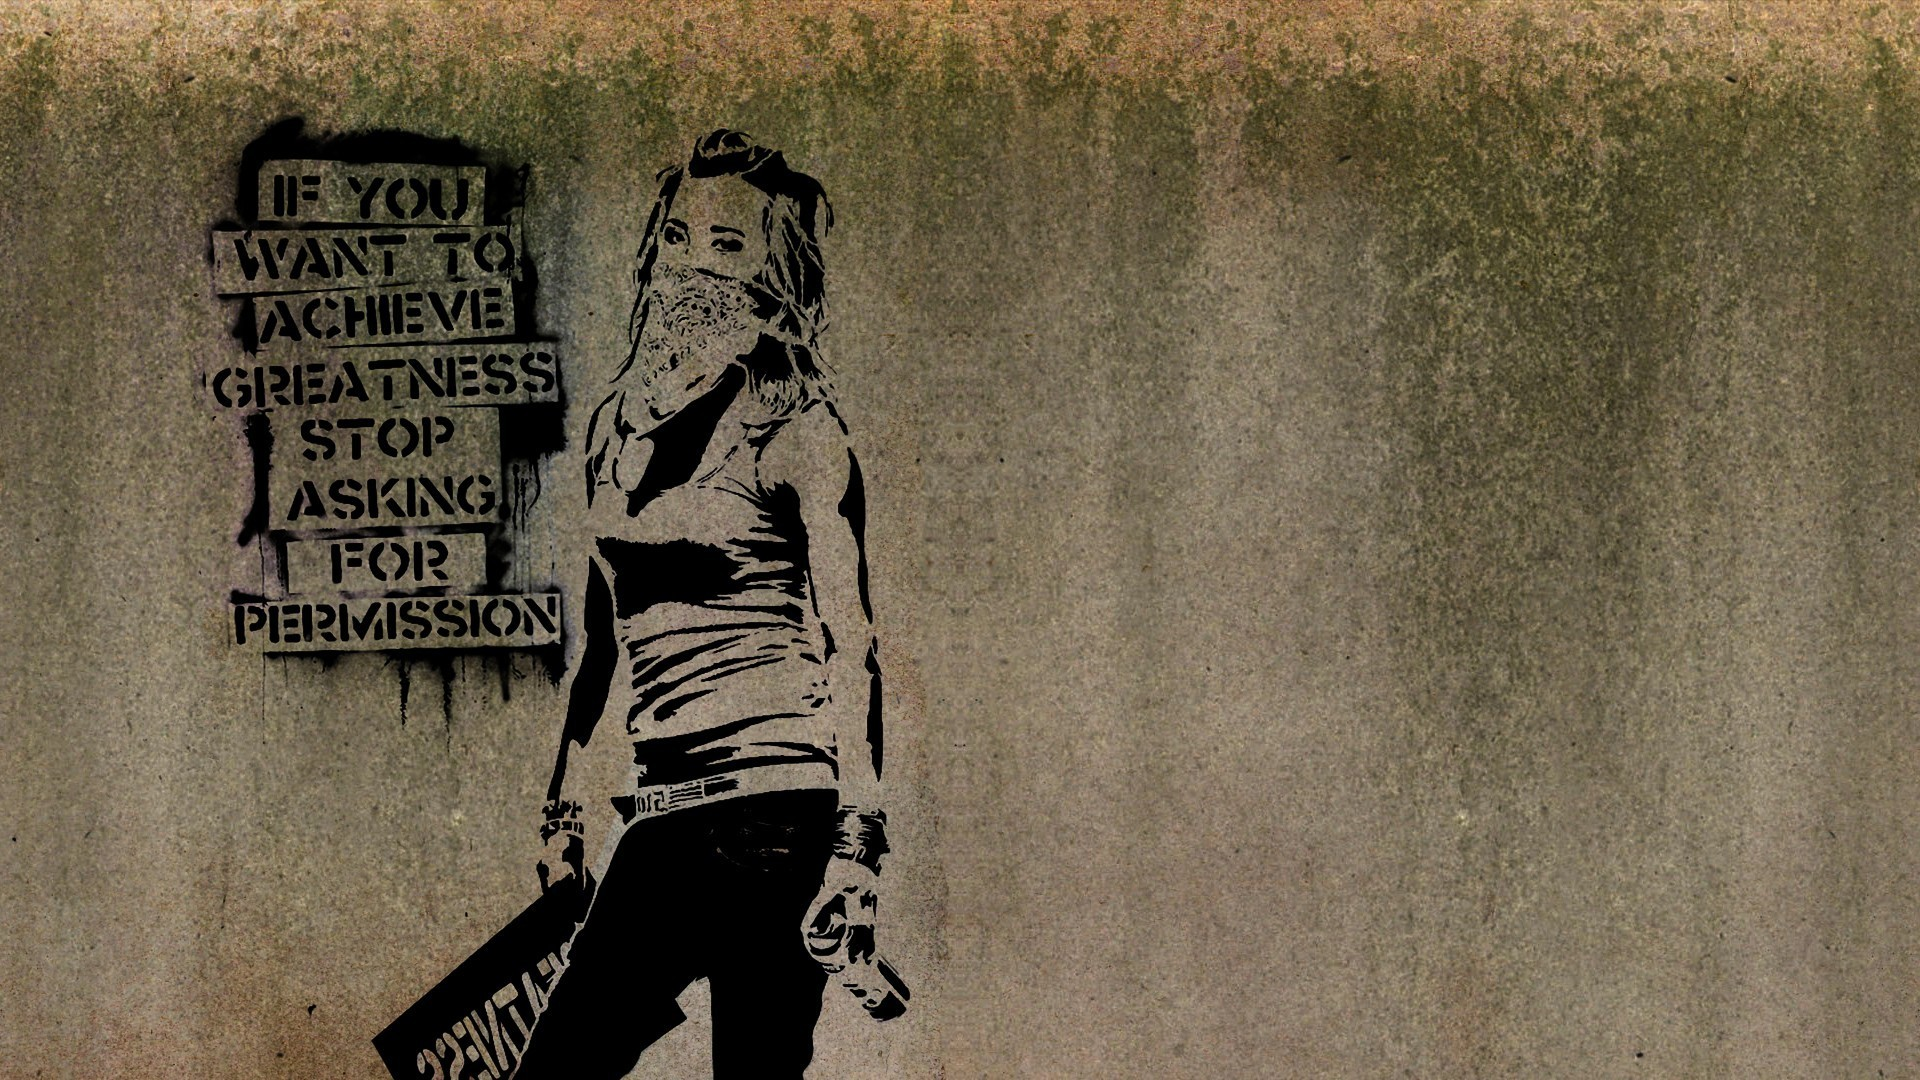 graffiti, Women, Banksy, Artwork, Text, Quote, Minimalism, Inspirational,  Walls, Scarf Wallpapers HD / Desktop and Mobile Backgrounds